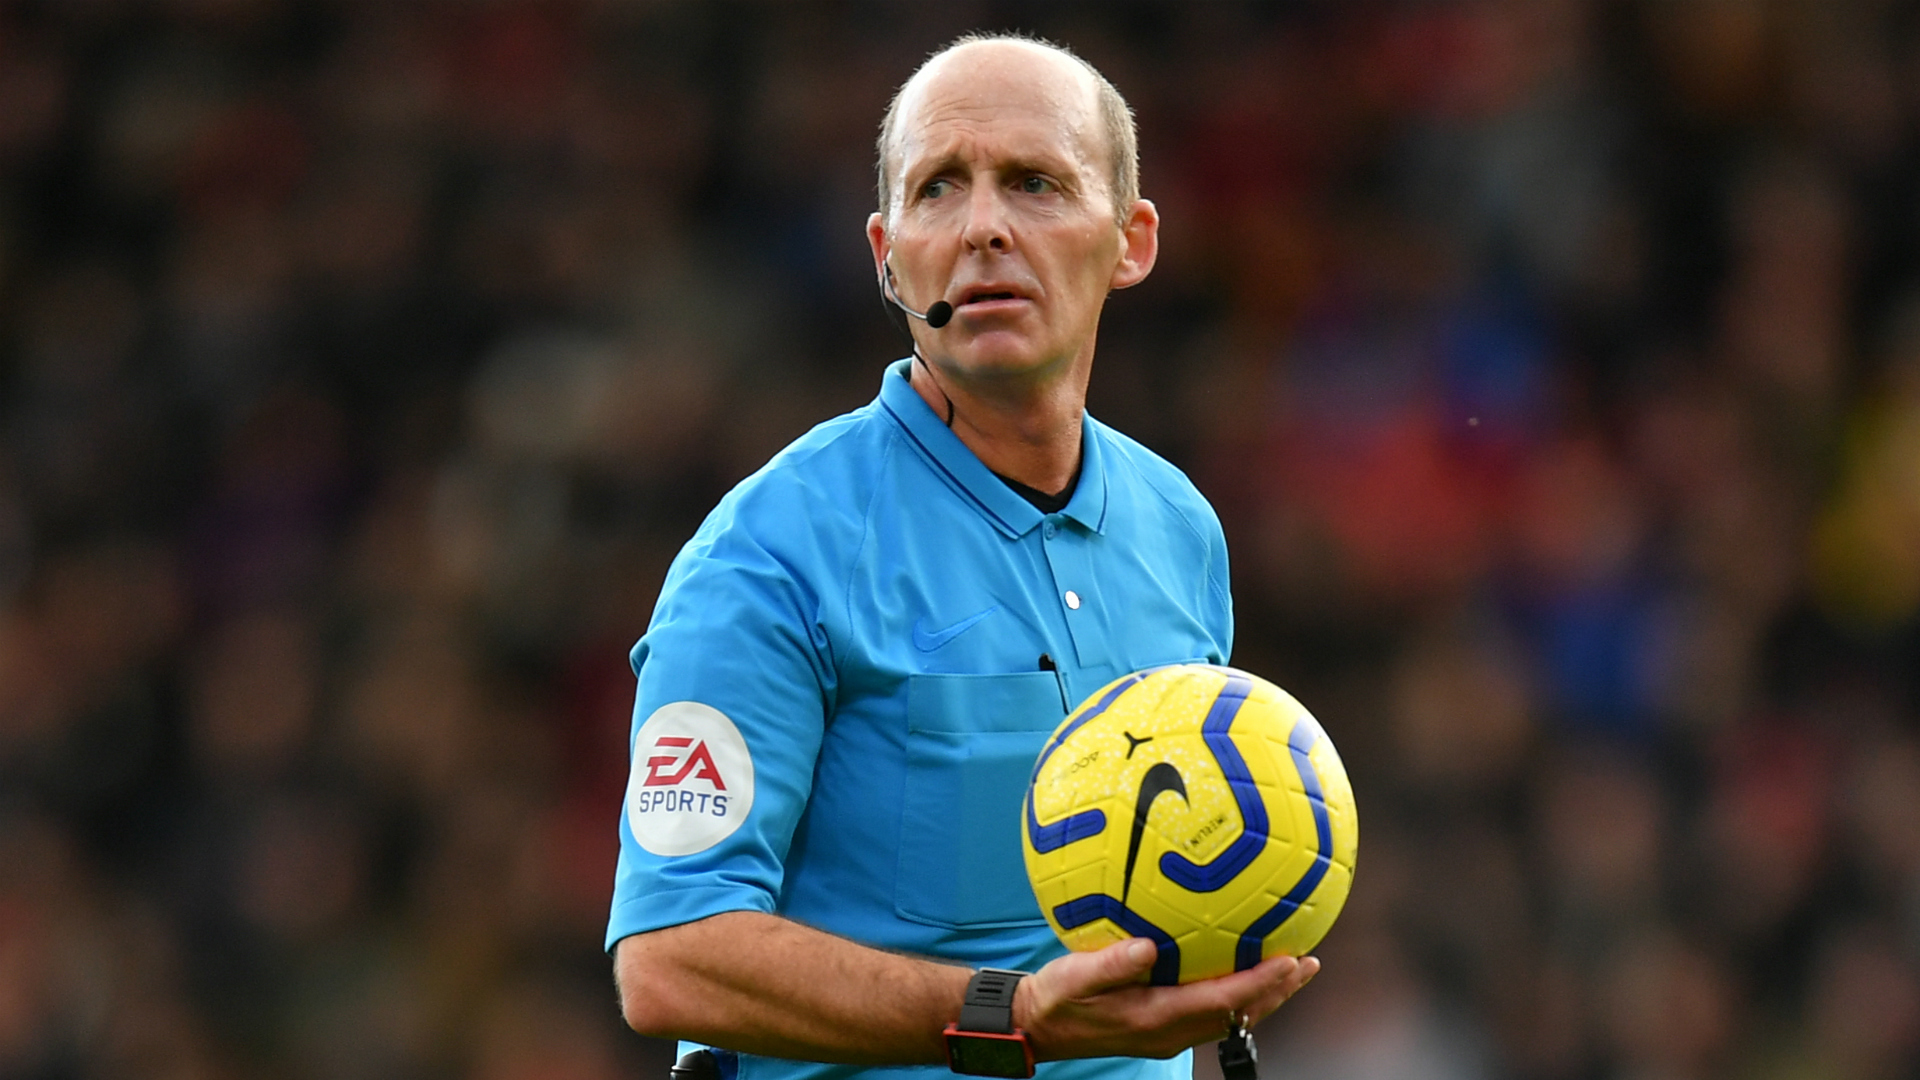 'I don't have an issue with bad publicity' - Premier League referee Mike Dean